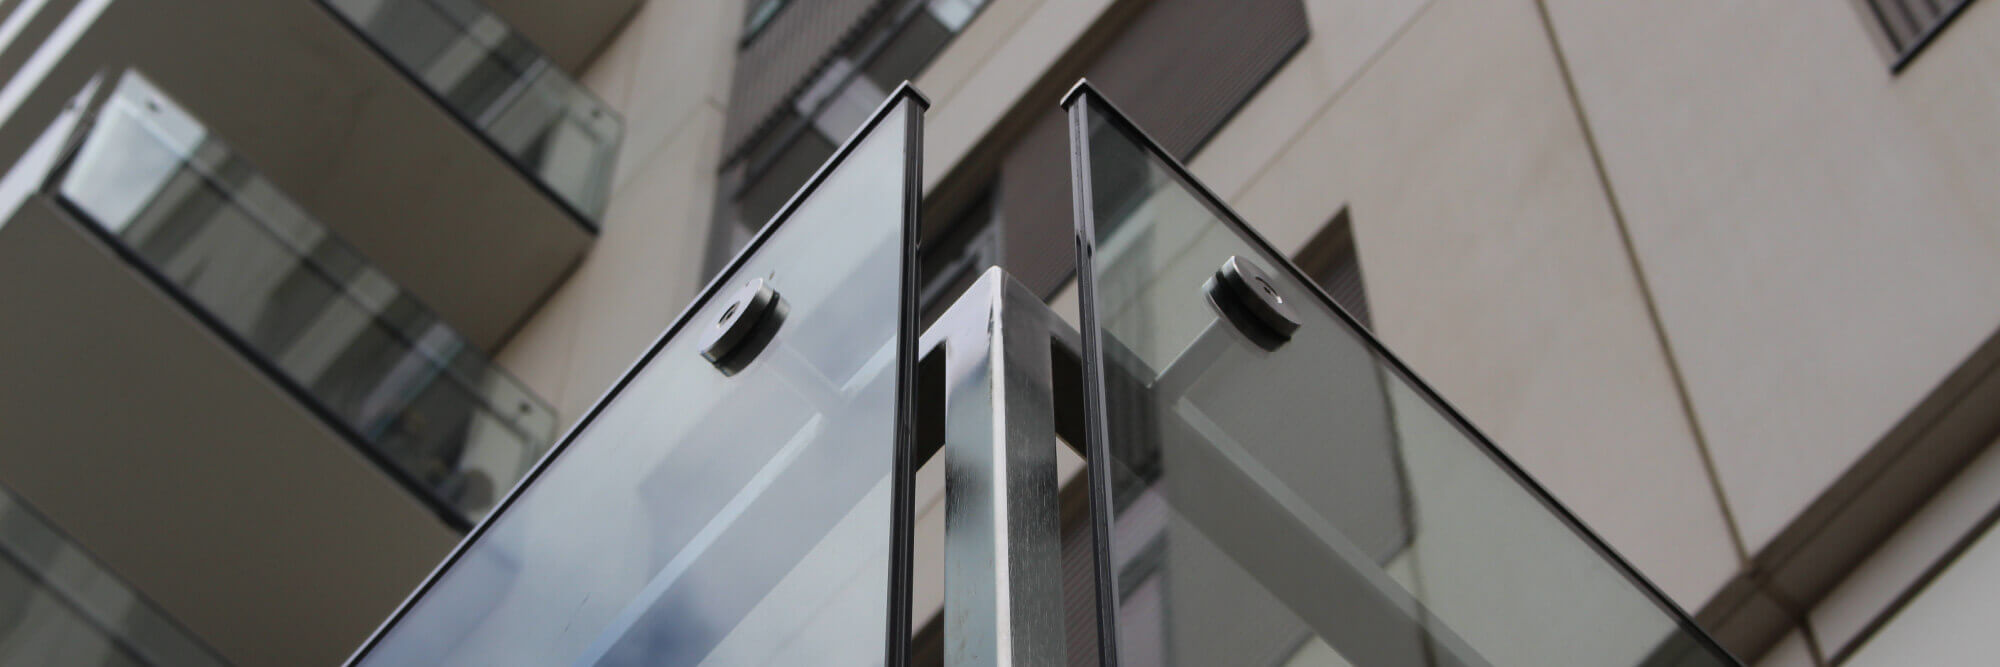 Toughened Laminated Glass UK